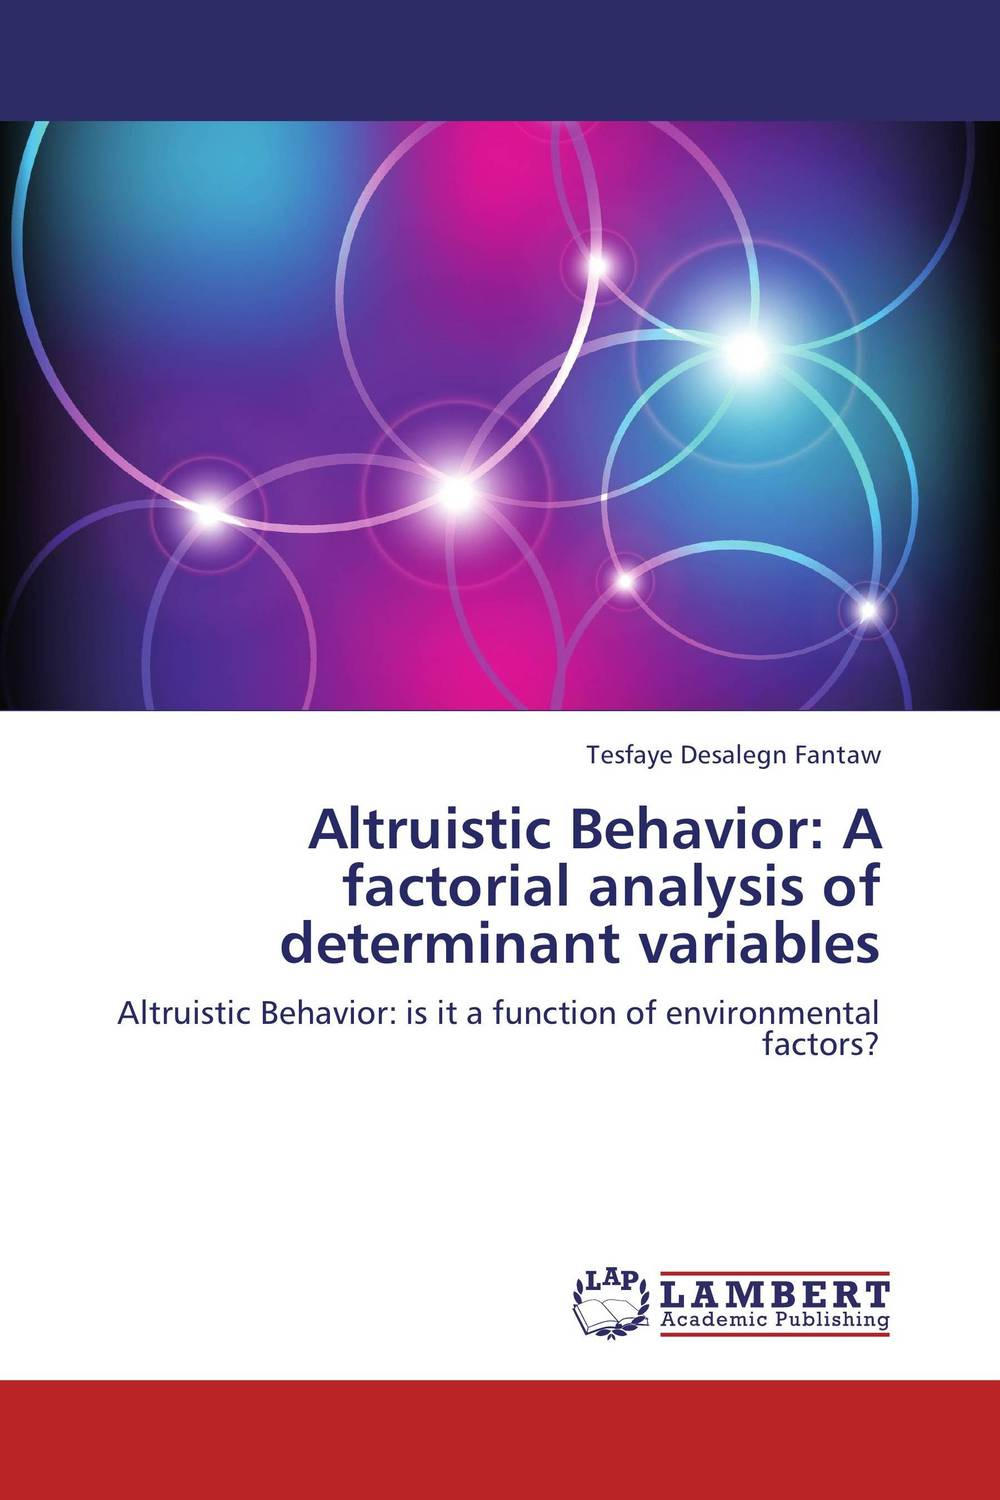 Altruistic Behavior: A factorial analysis of determinant variables yussif yakubu altruism analysis of a paradox